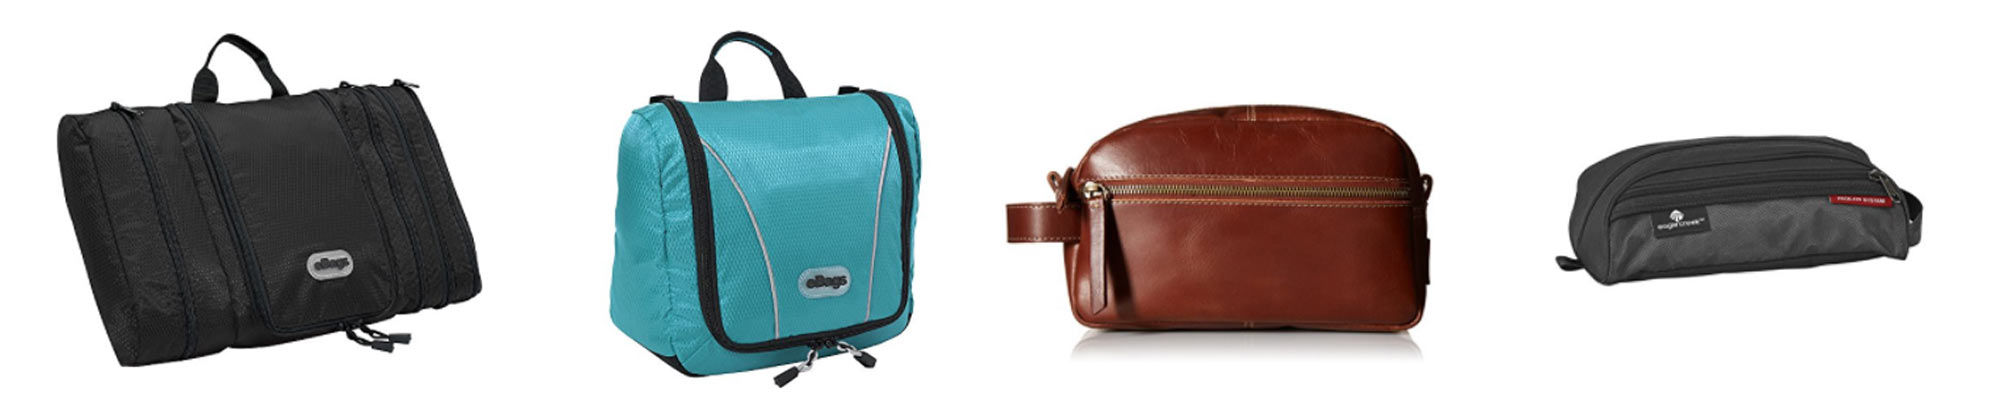 Best Toiletry Bags for Travel 2018   Savored Journeys